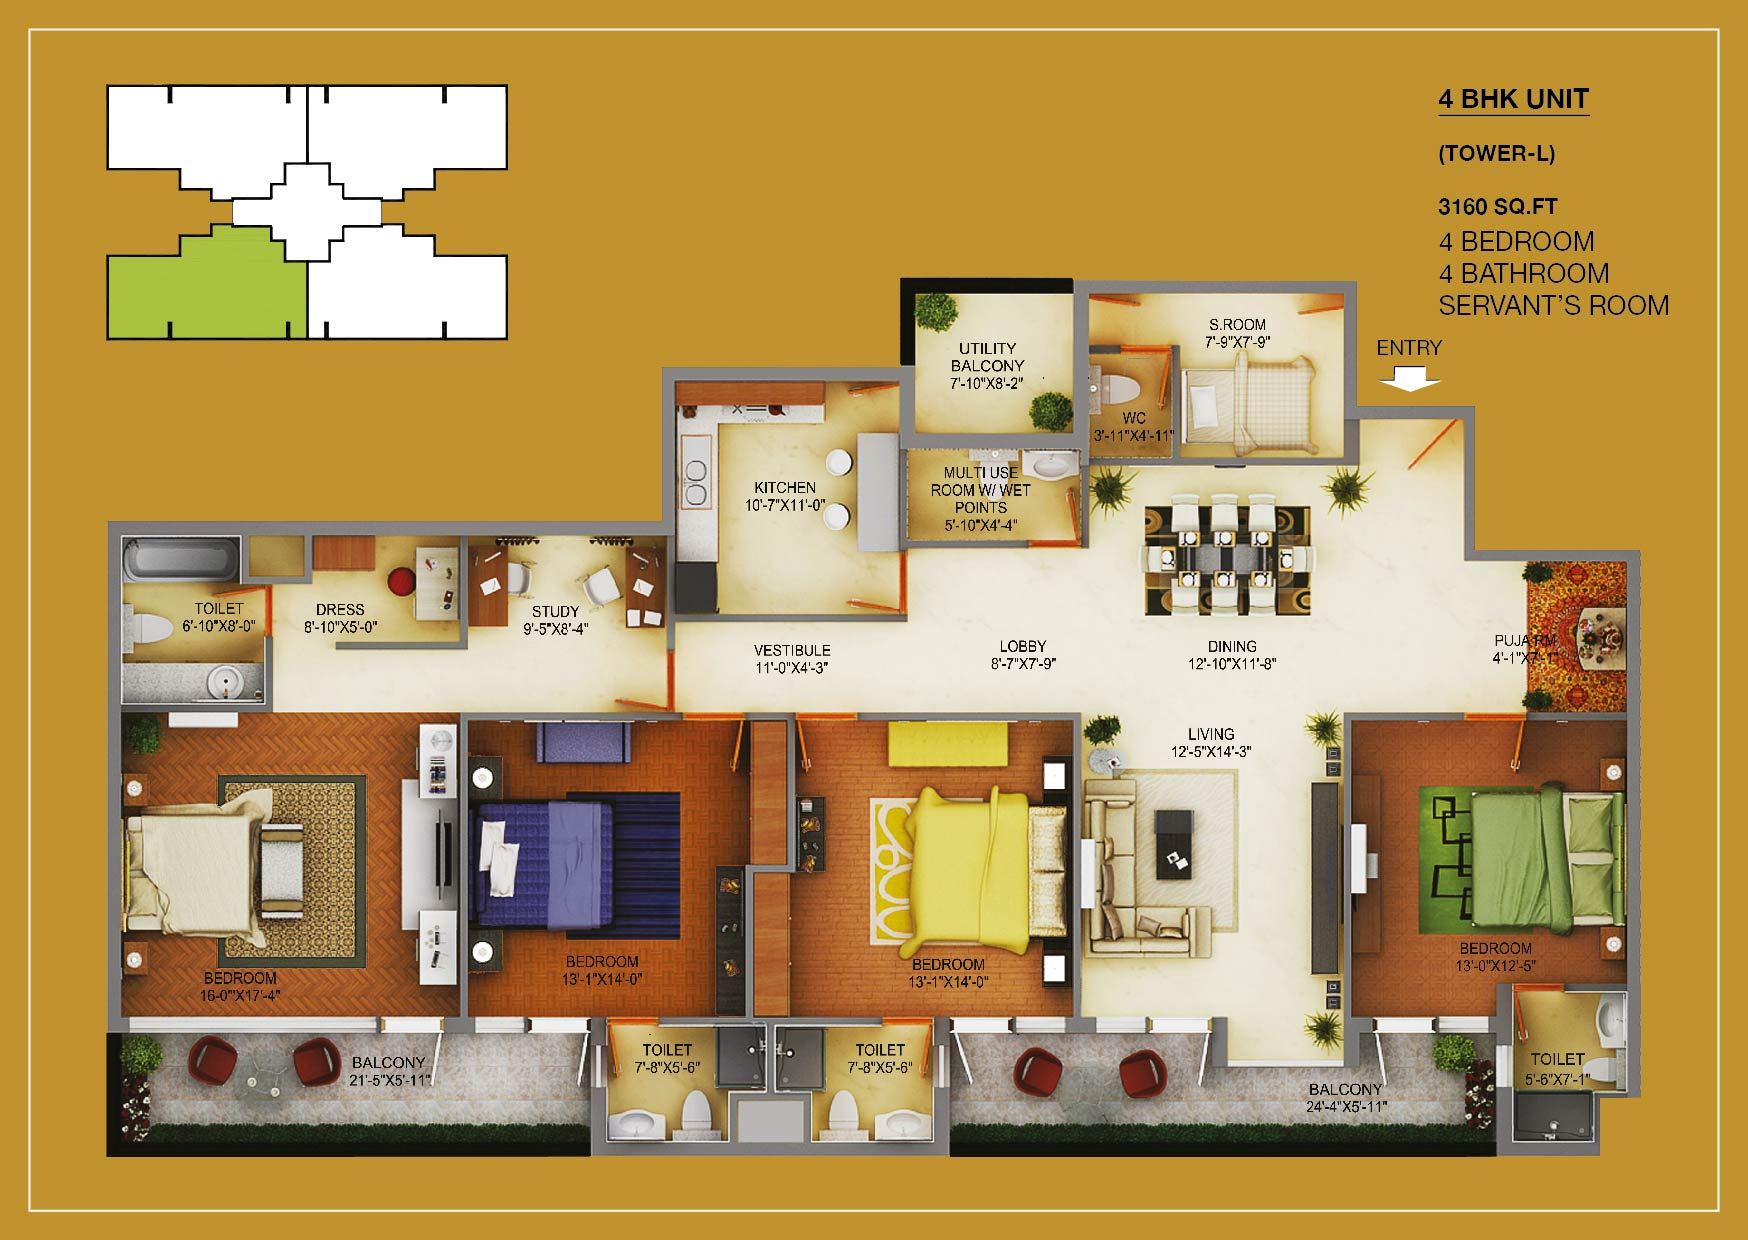 wave estate mohali flats layout plan